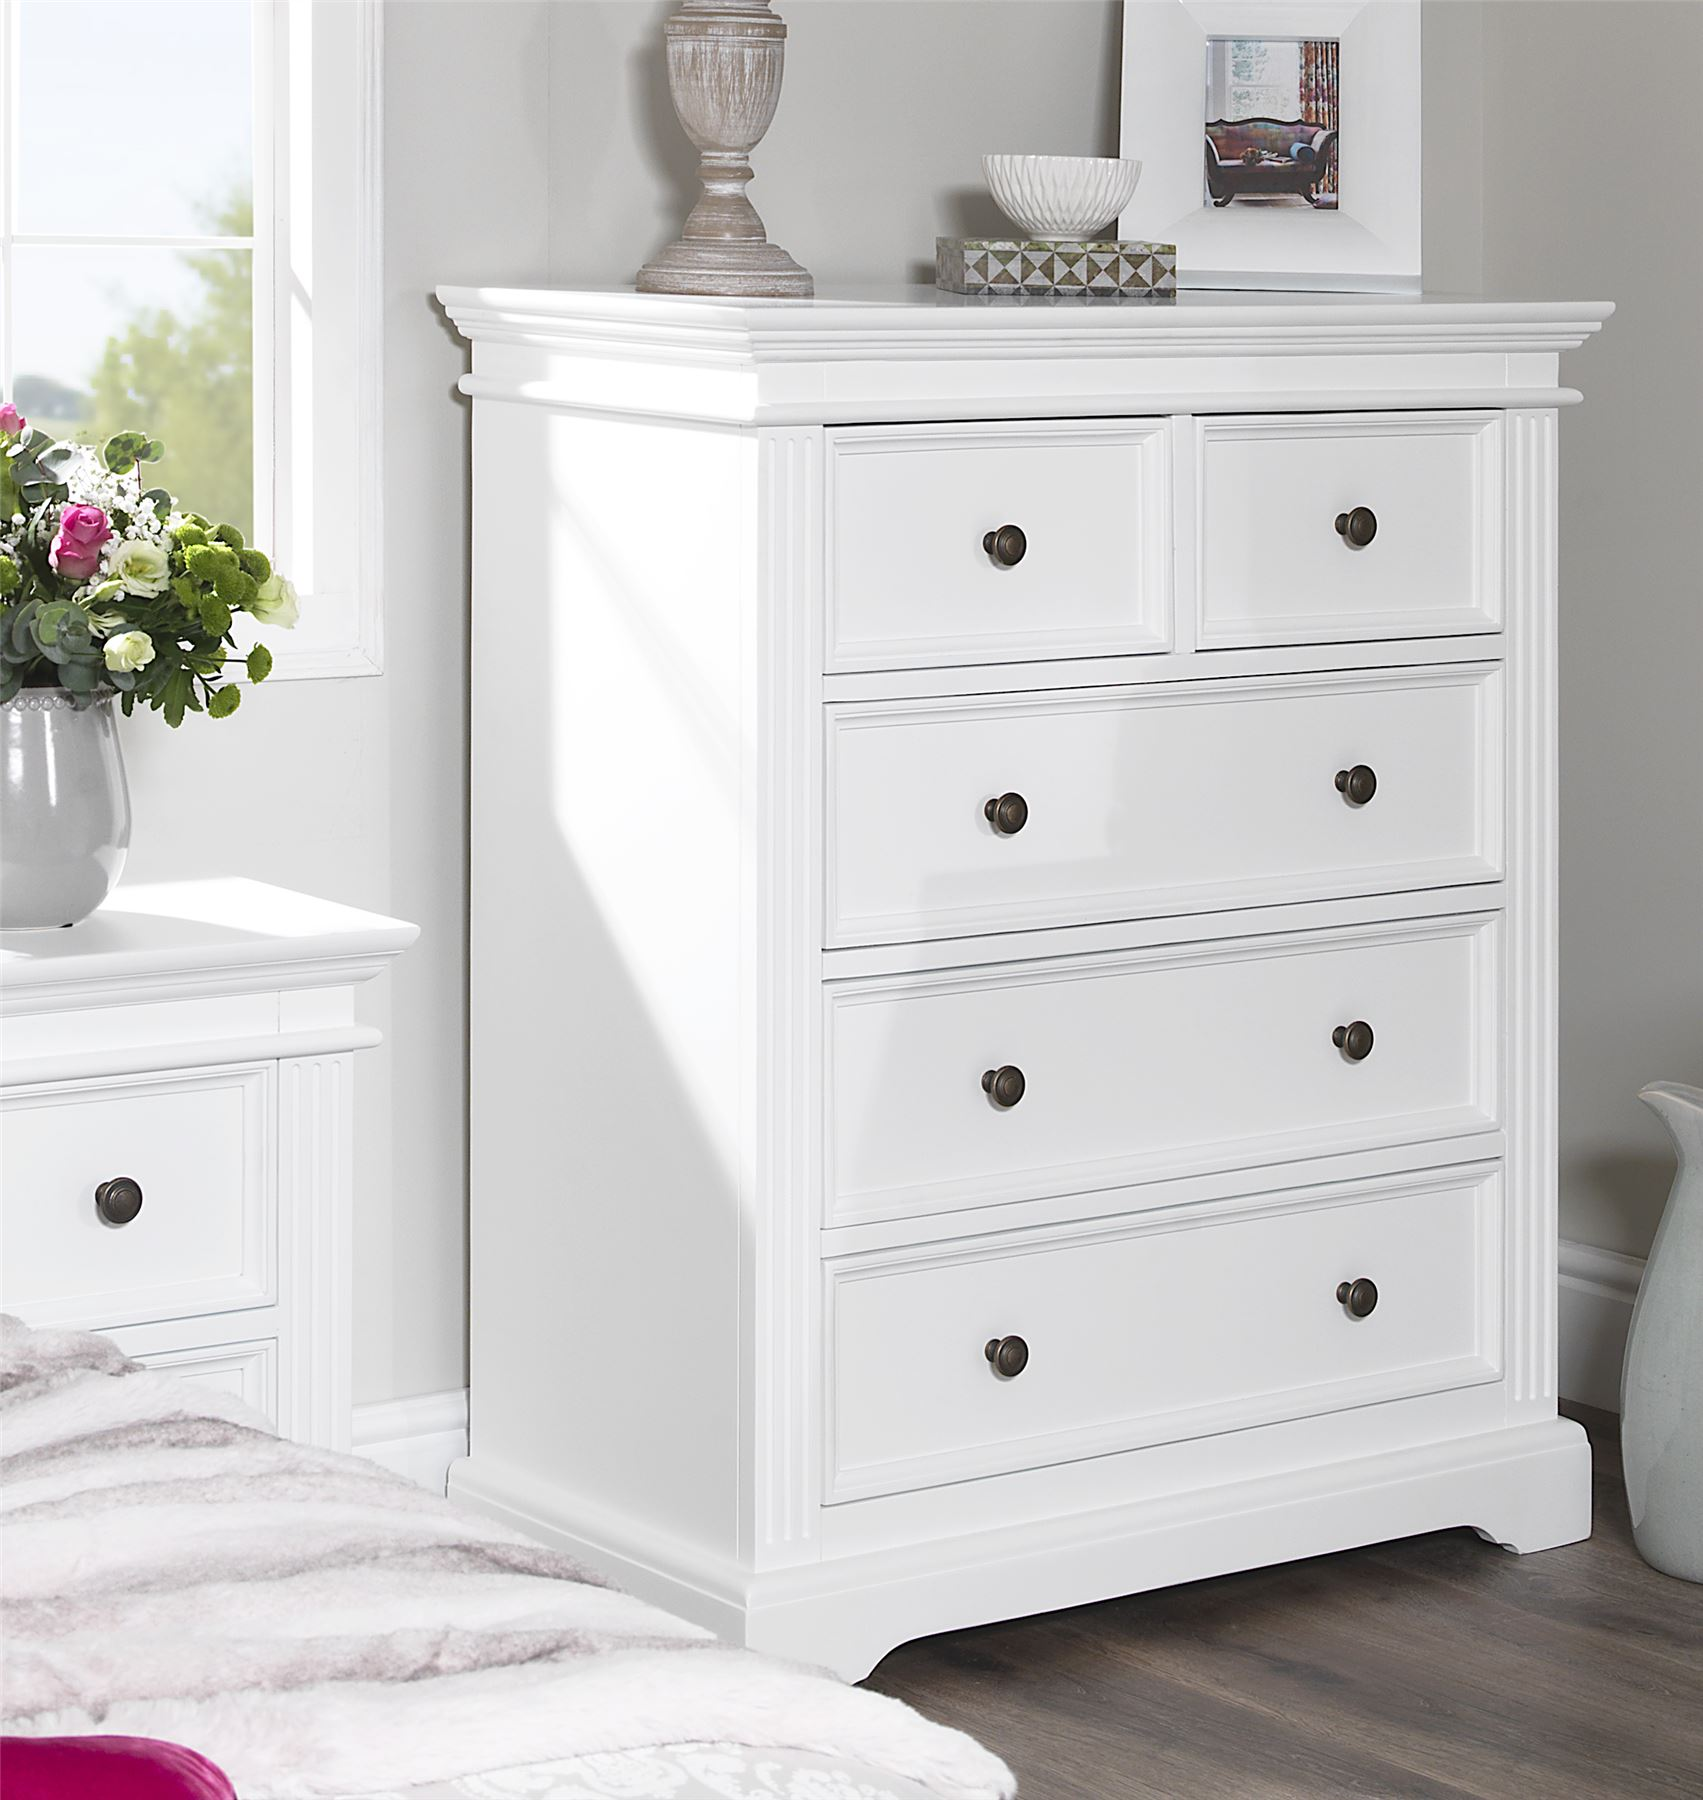 chest of drawers for small bedrooms gainsborough white bedroom furniture bedside cabinets 20407